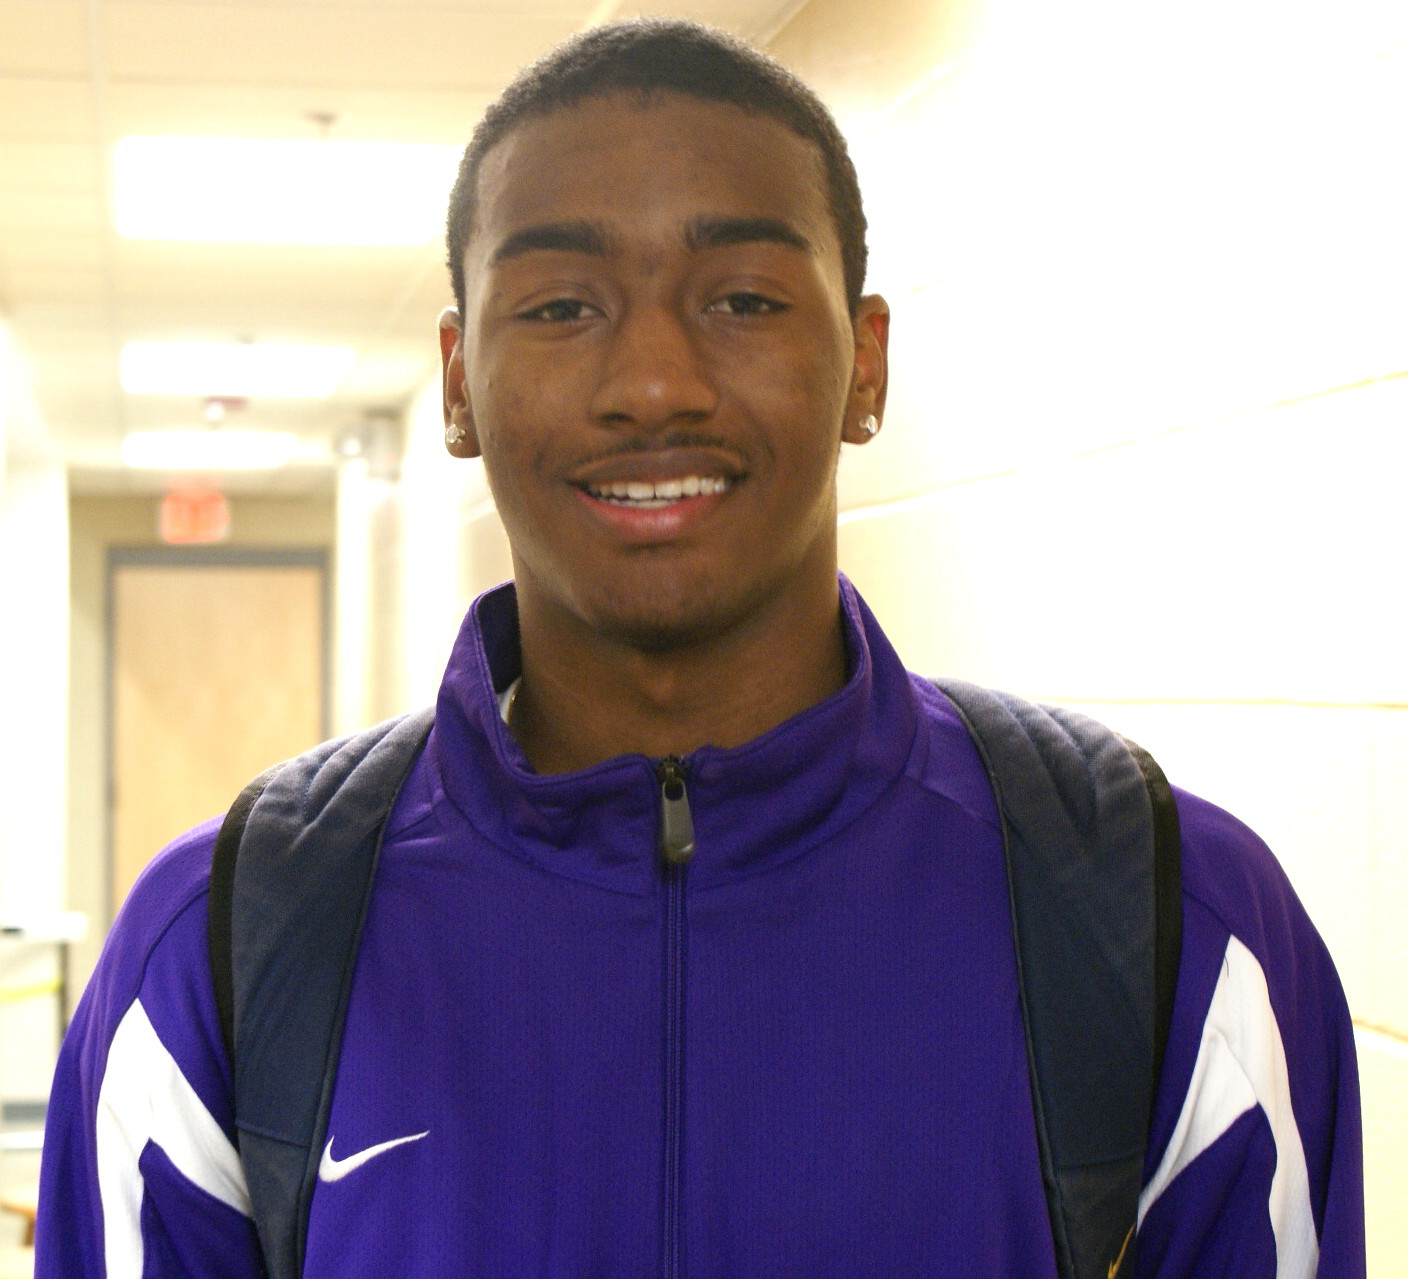 The sportz assassin john wall visits nc central to show us that we